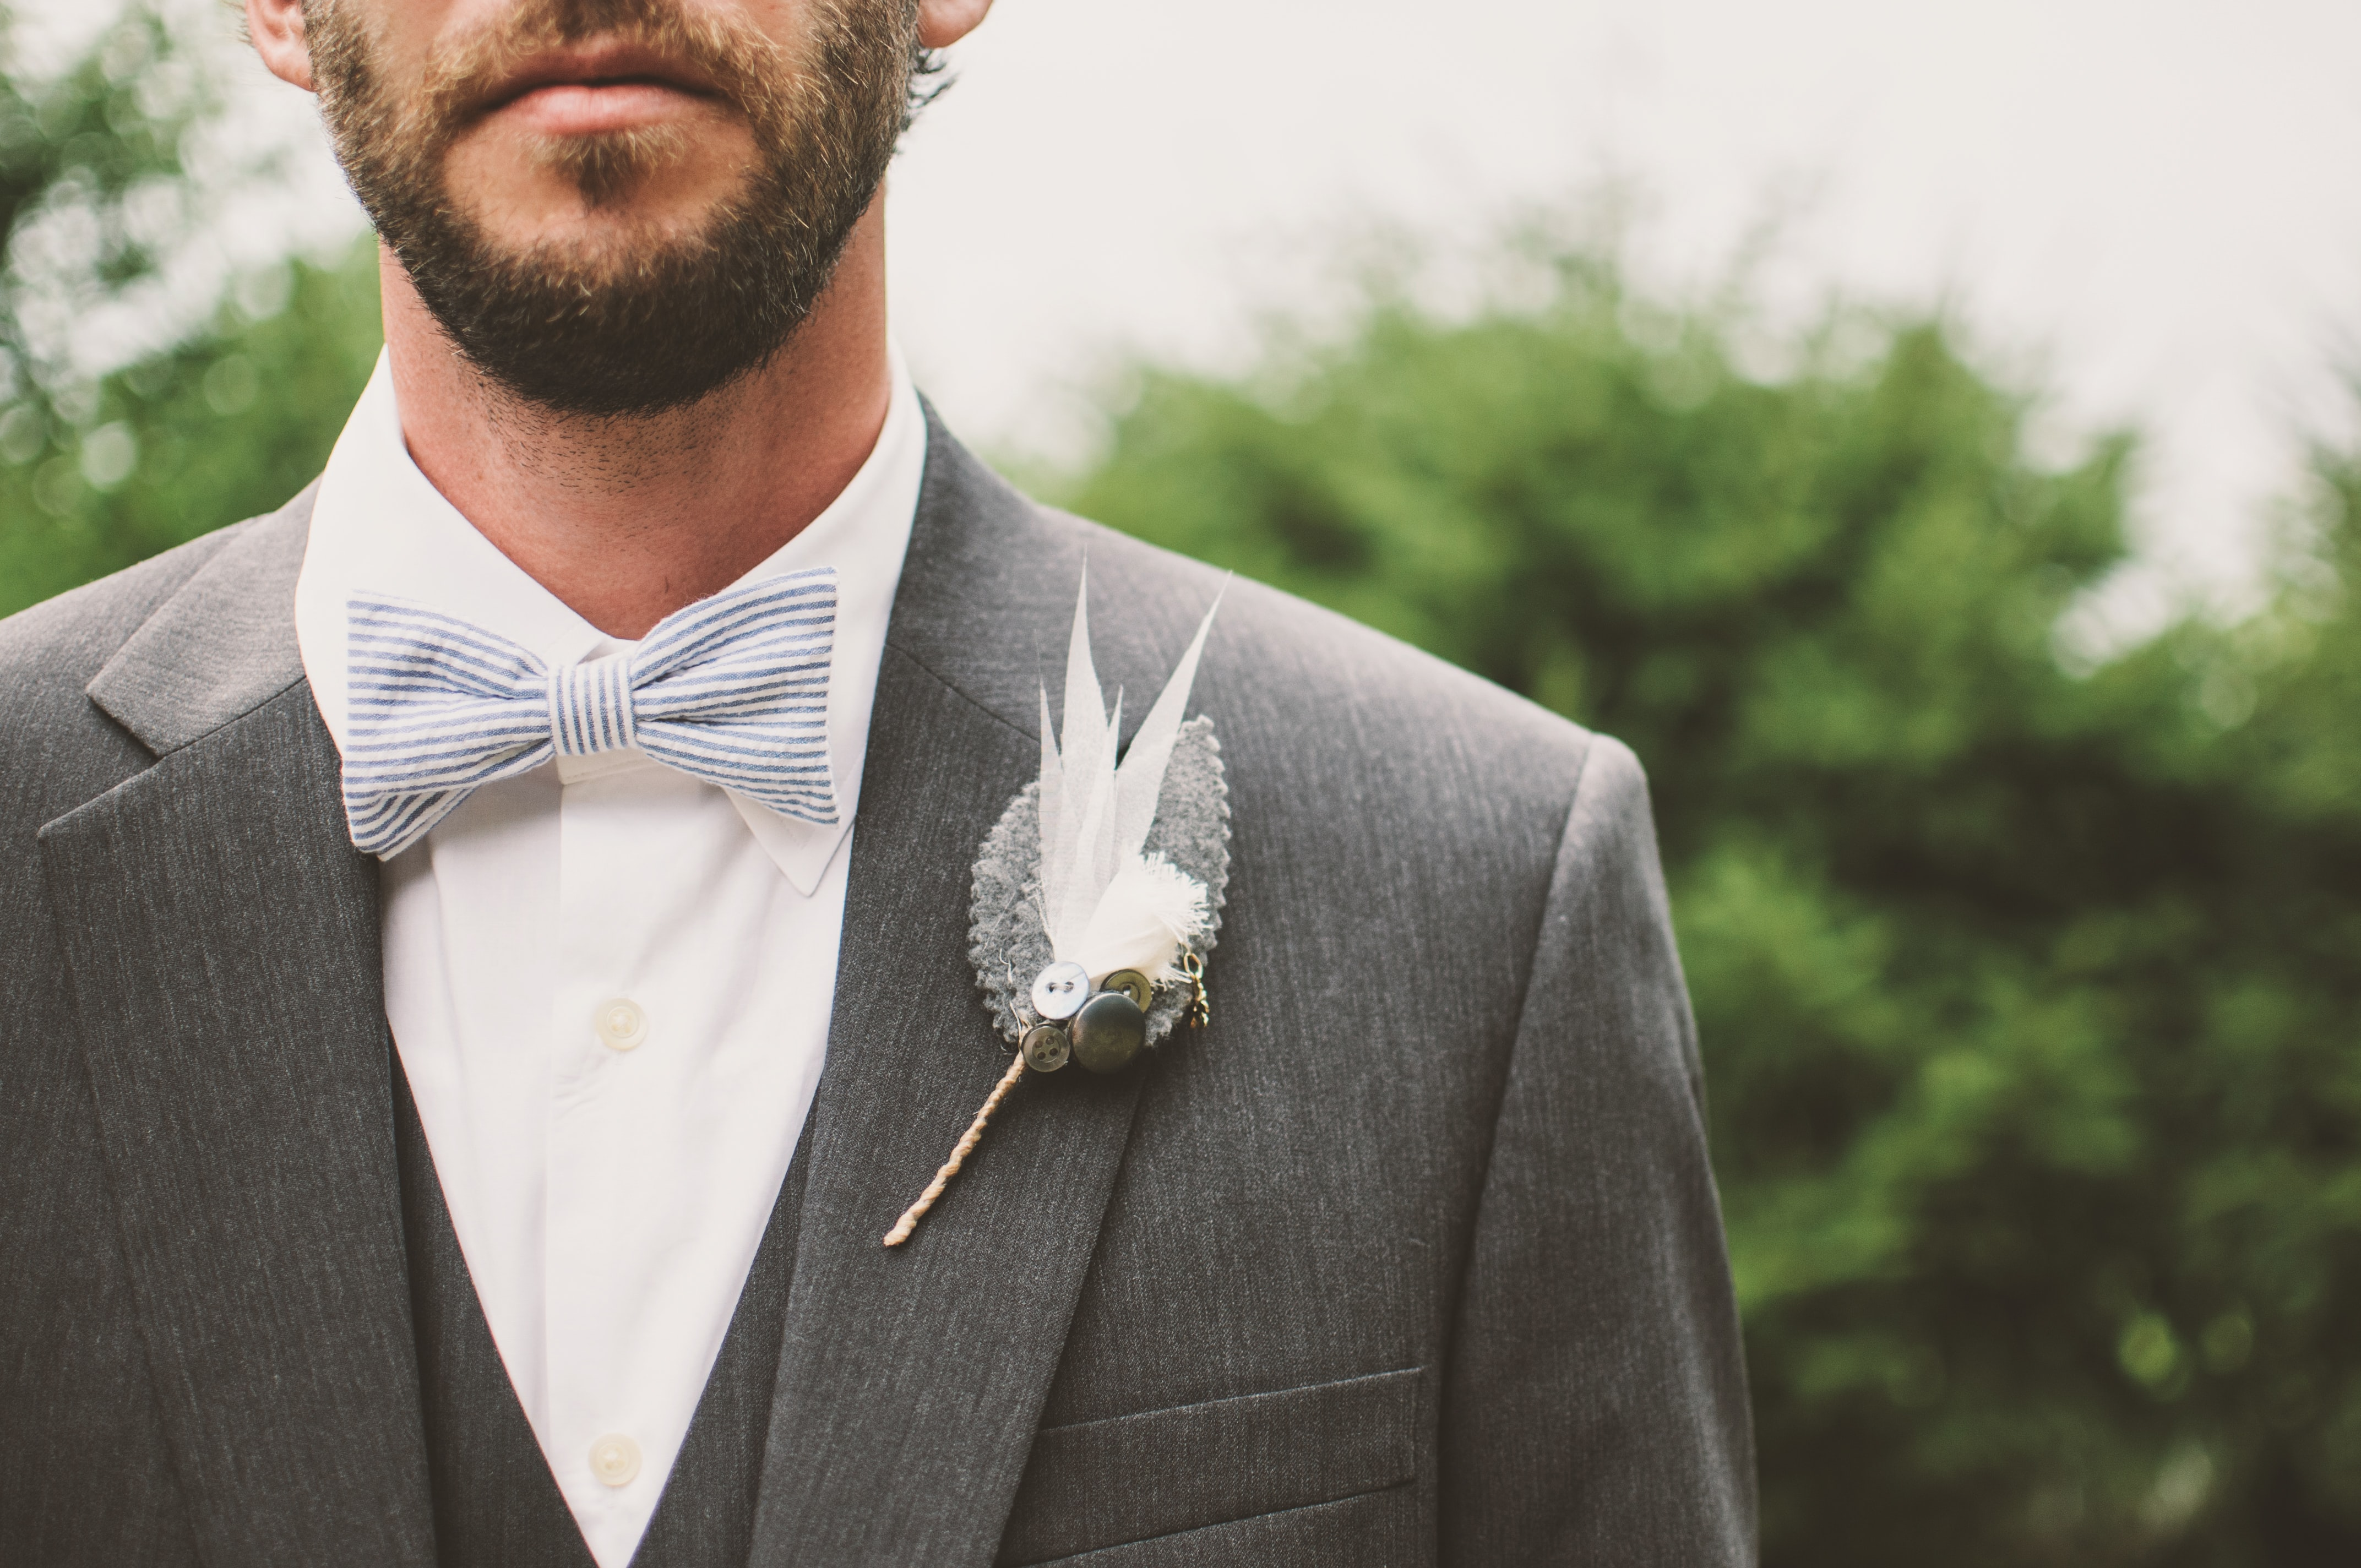 A bearded groom wearing a gray suit and striped bowtie with a unique boutonniere